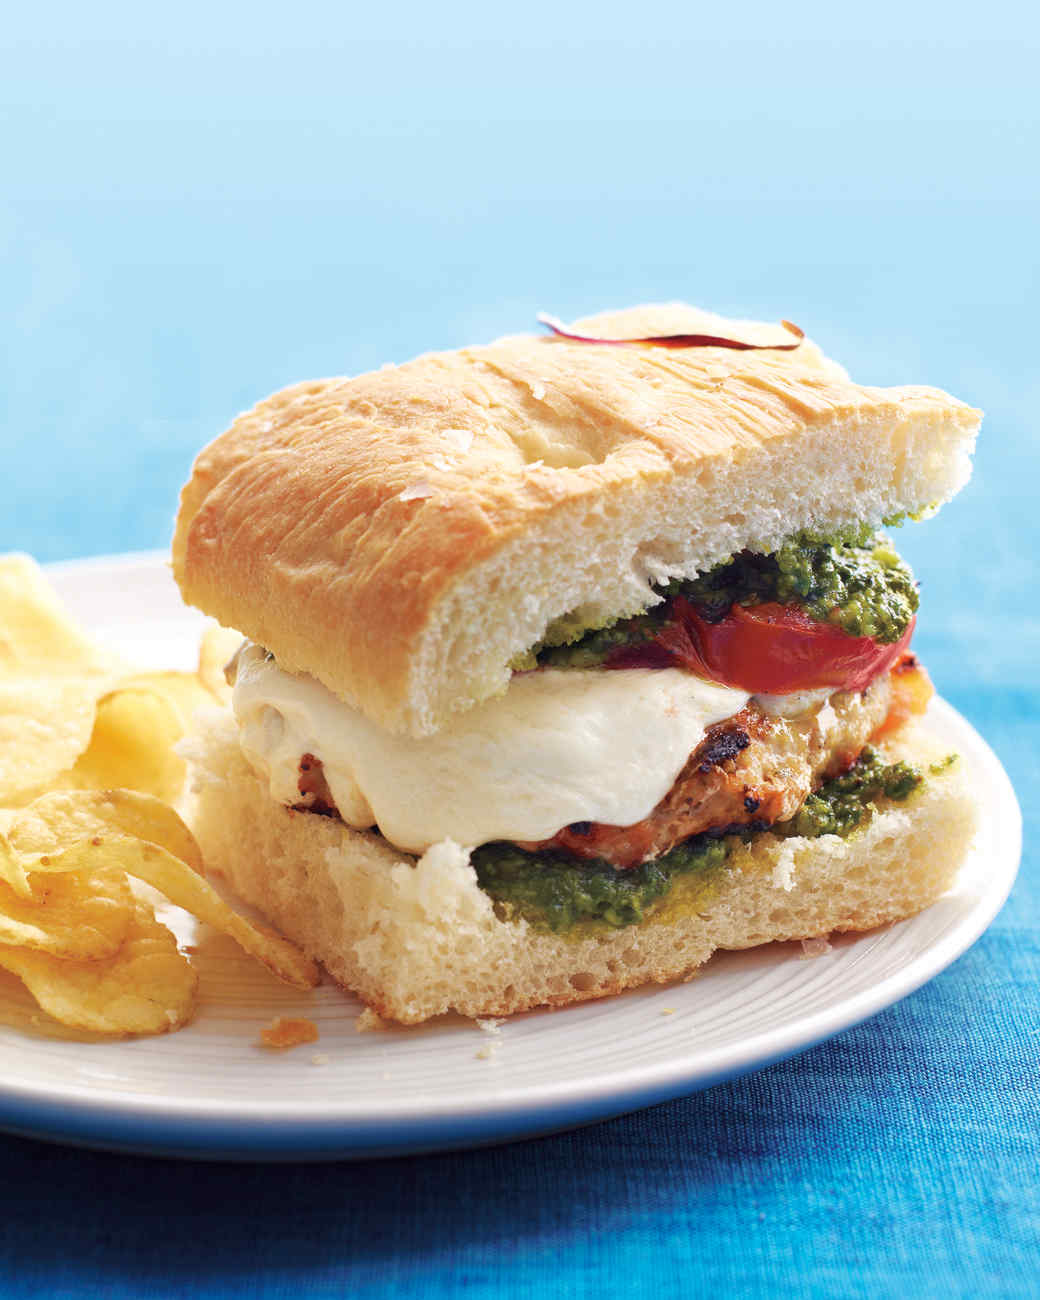 pesto-chicken-bergers-med108588.jpg